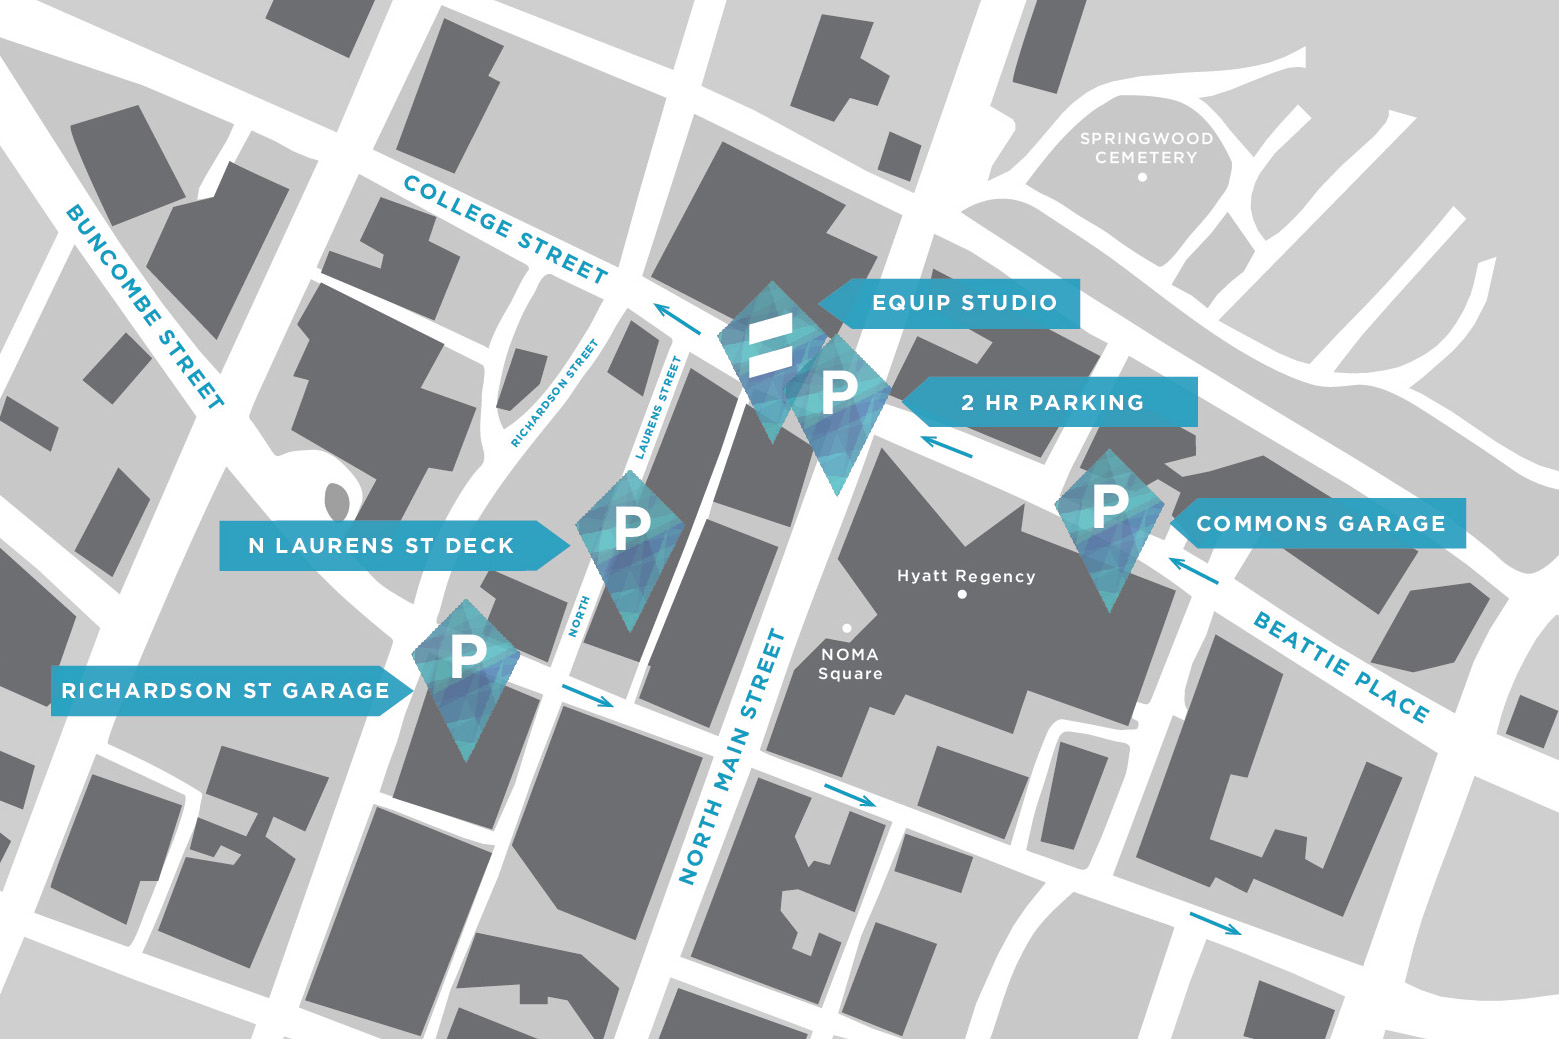 Parking Map - Equip Studio - GVL